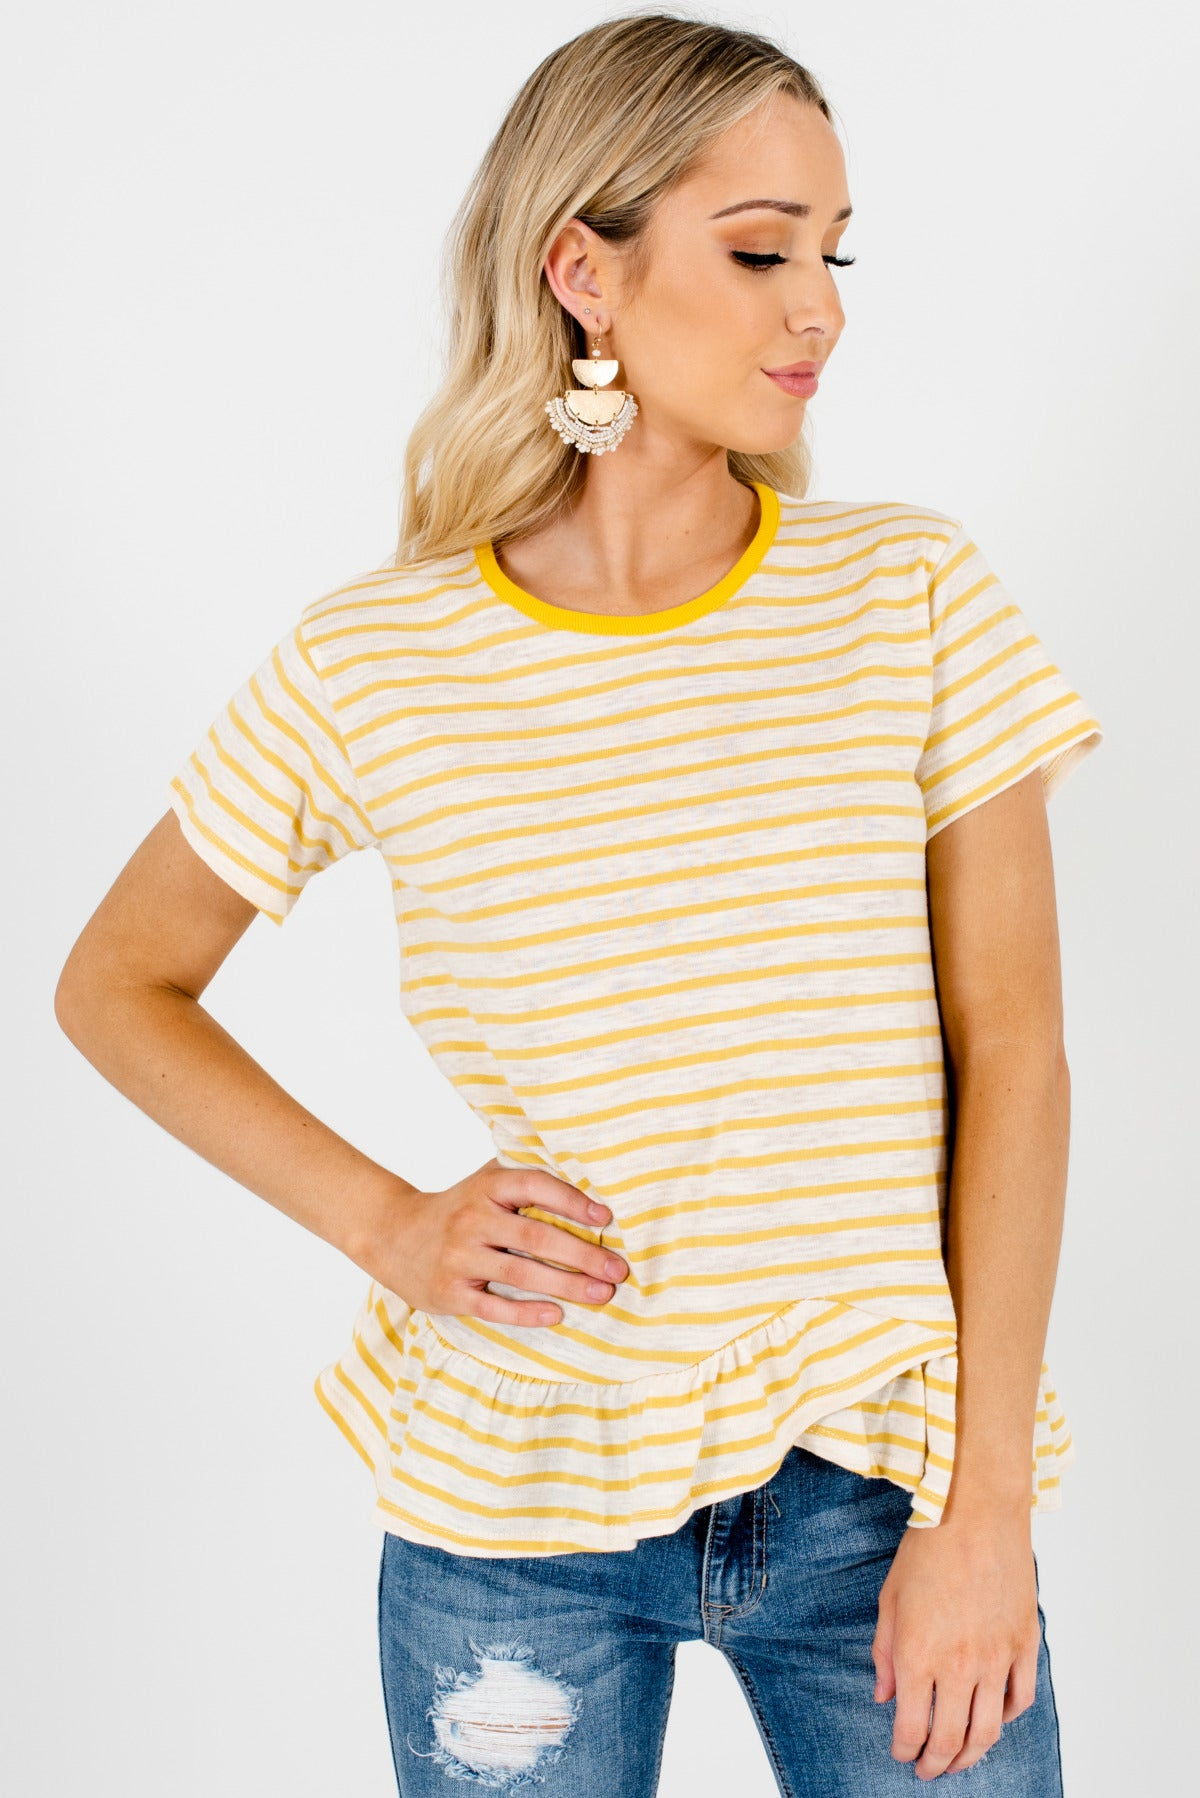 Yellow and Cream Striped Patterned Boutique Tops for Women